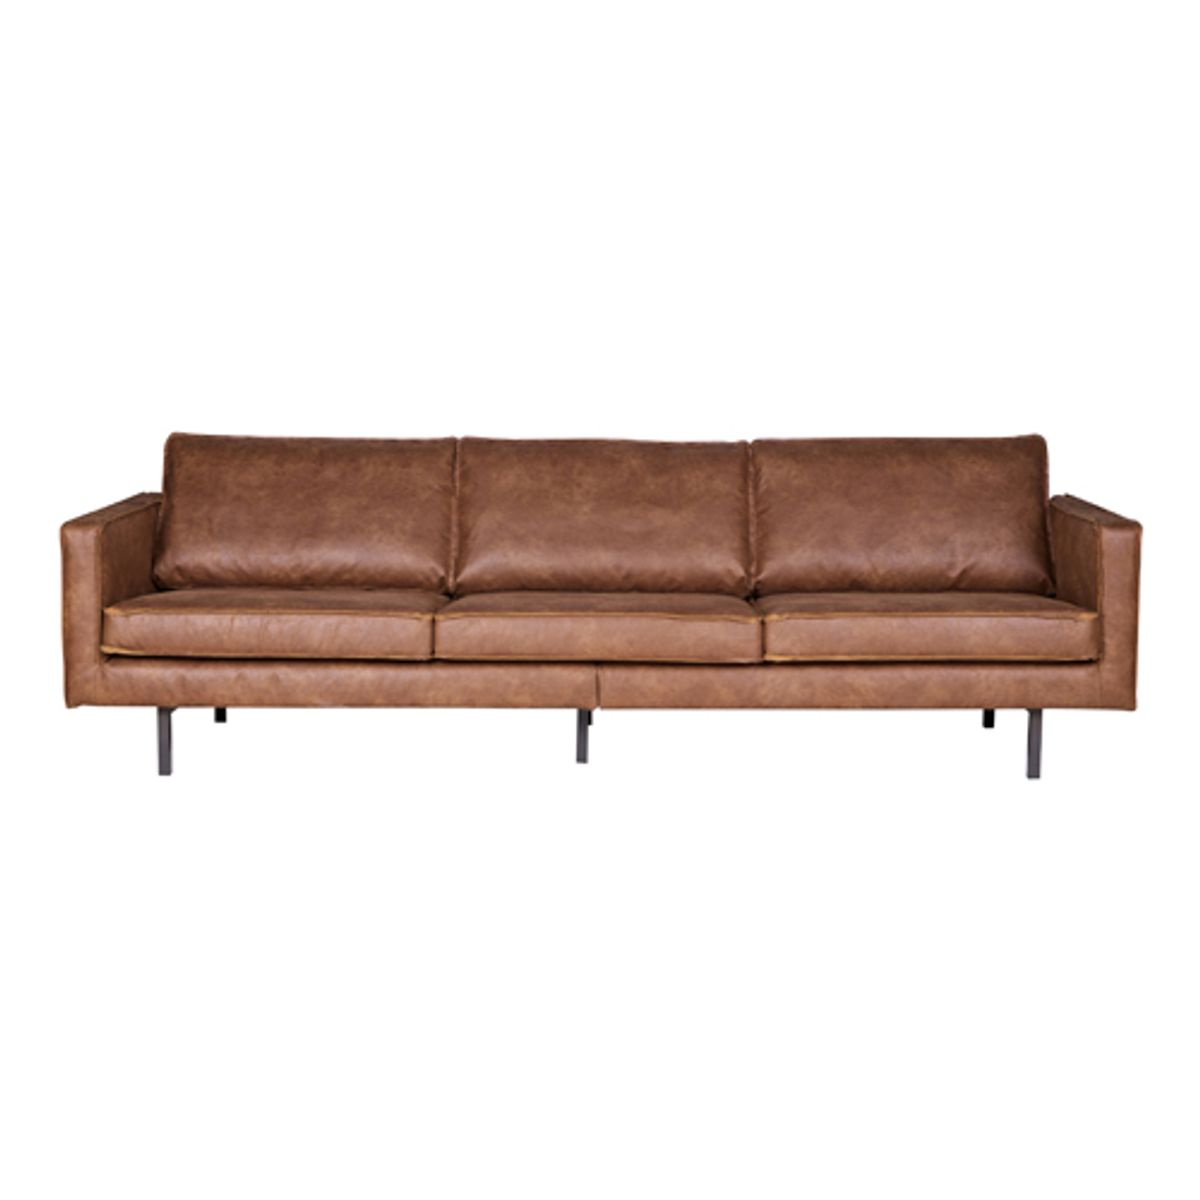 Canap contemporain en cuir et polyester rodeo cognac for Canape contemporain